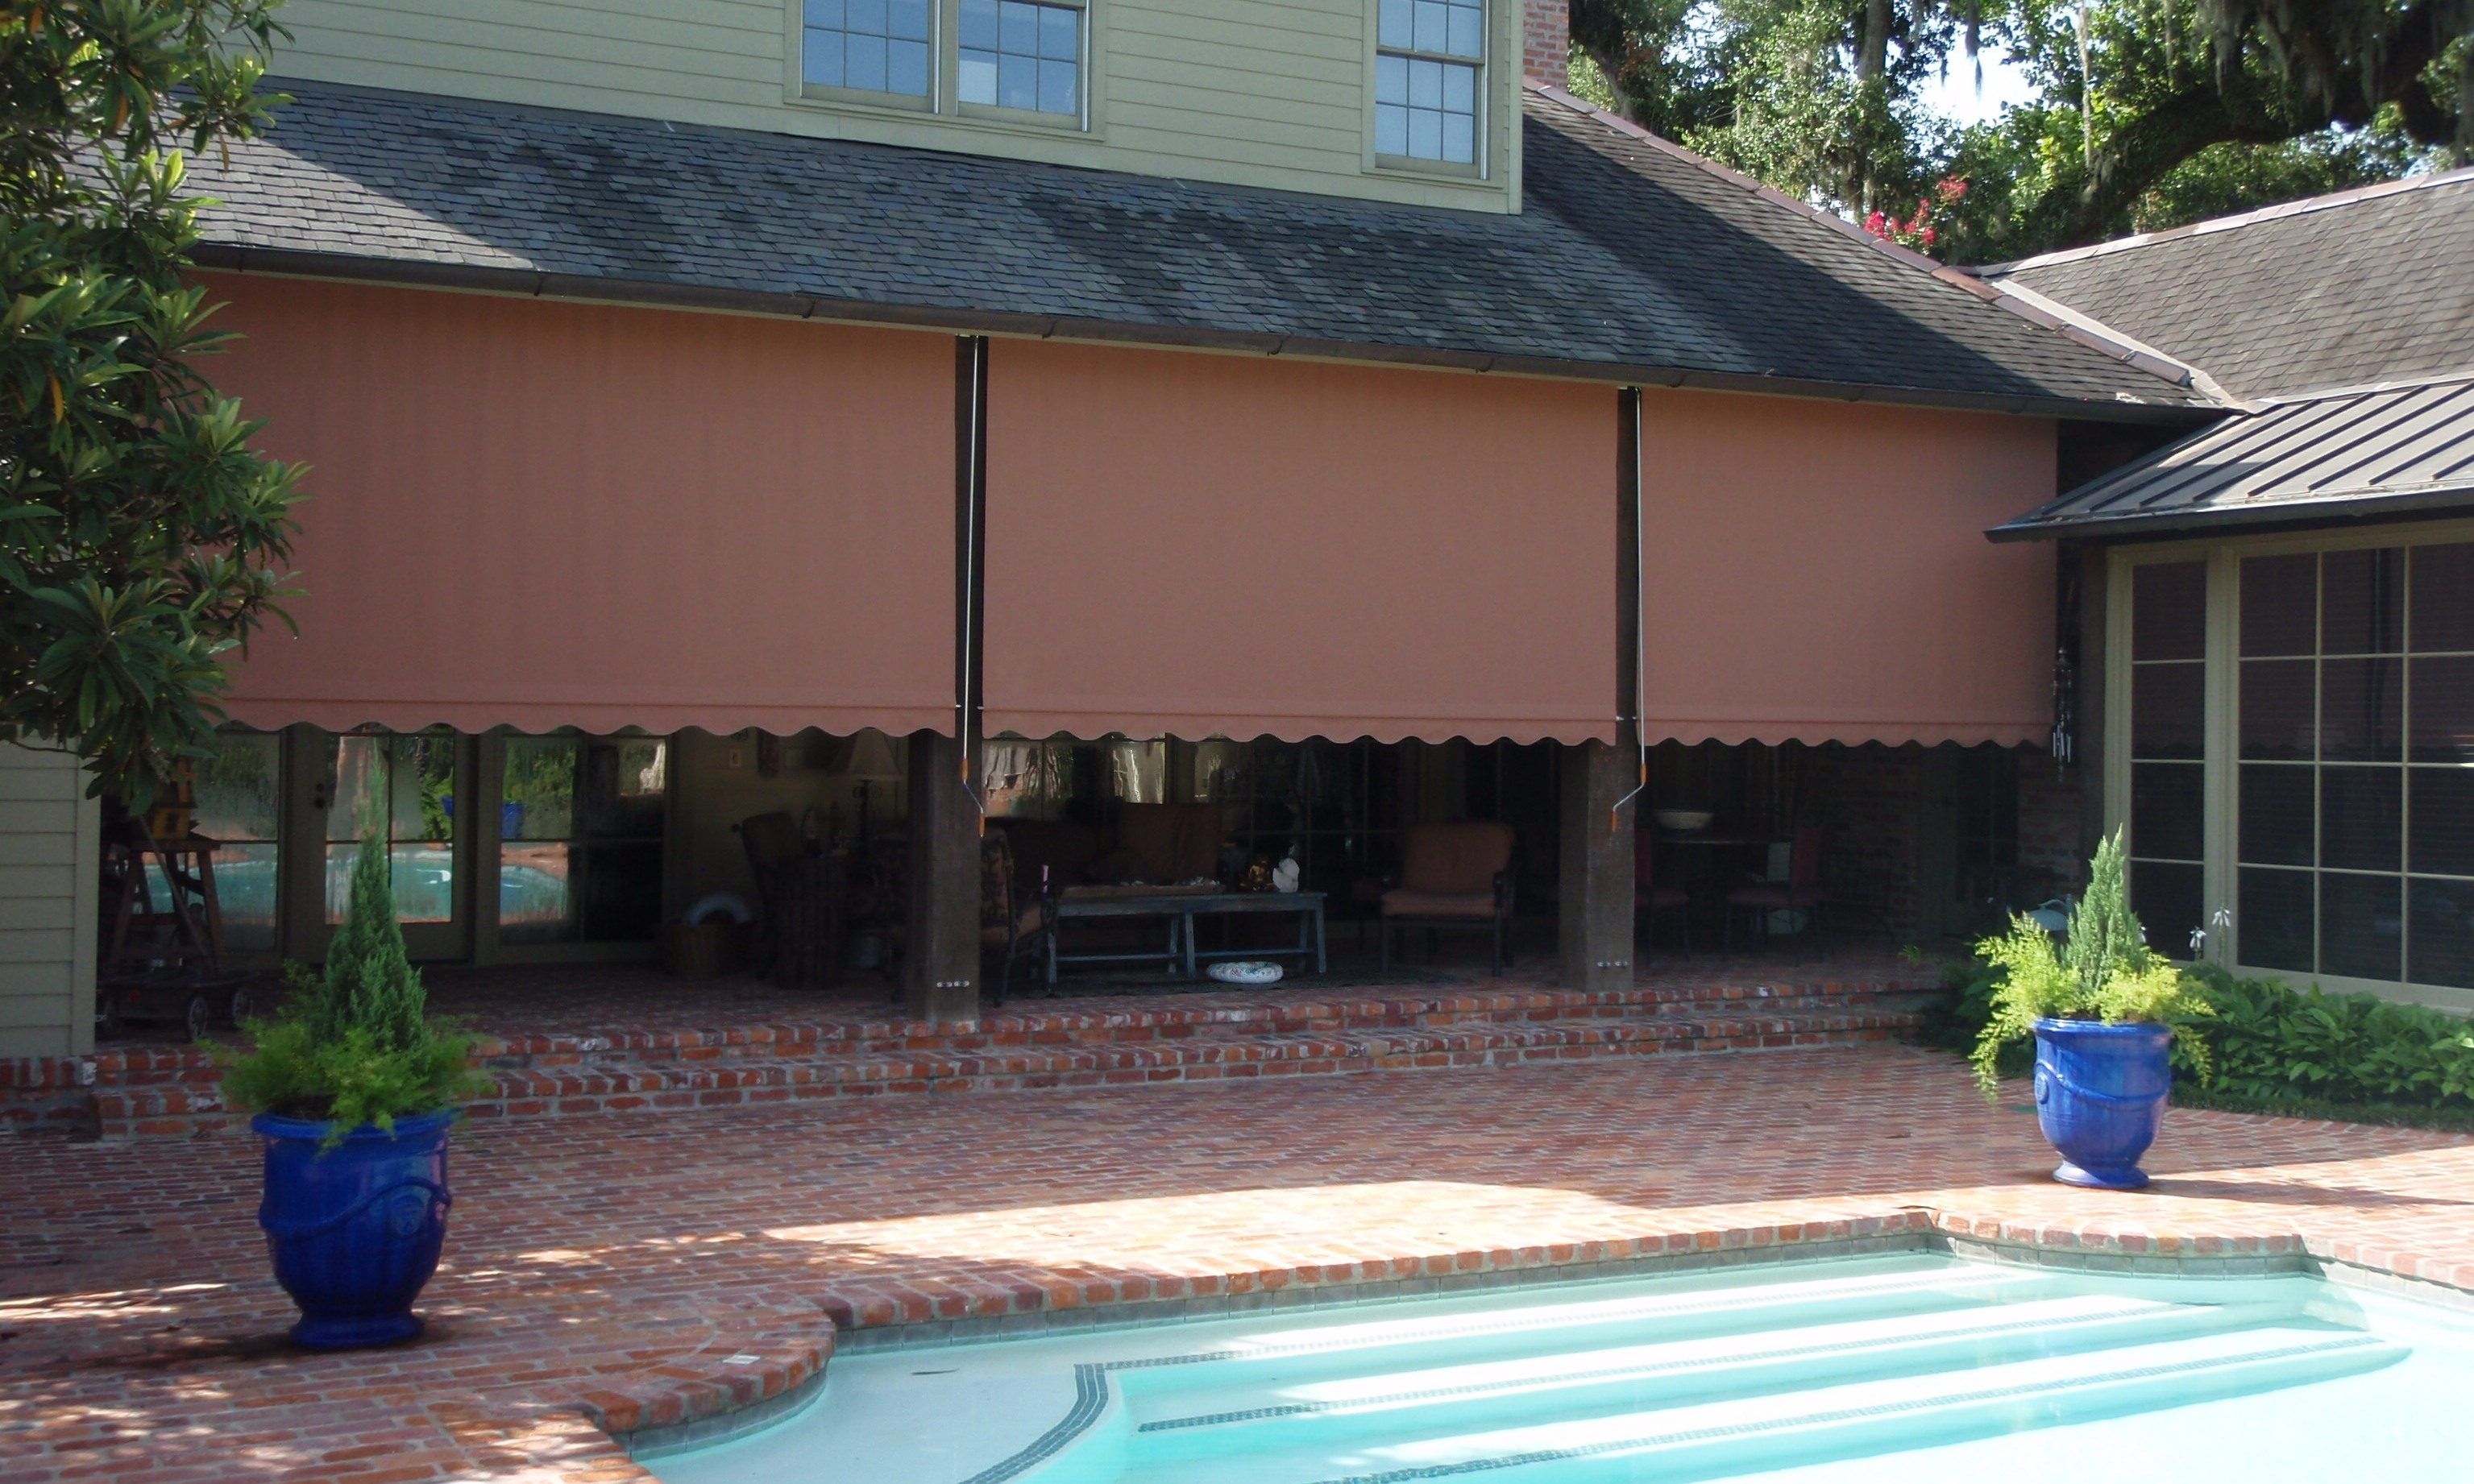 for island long awnings awning aluminum home patios info everythingbeauty lowes metal patio decks